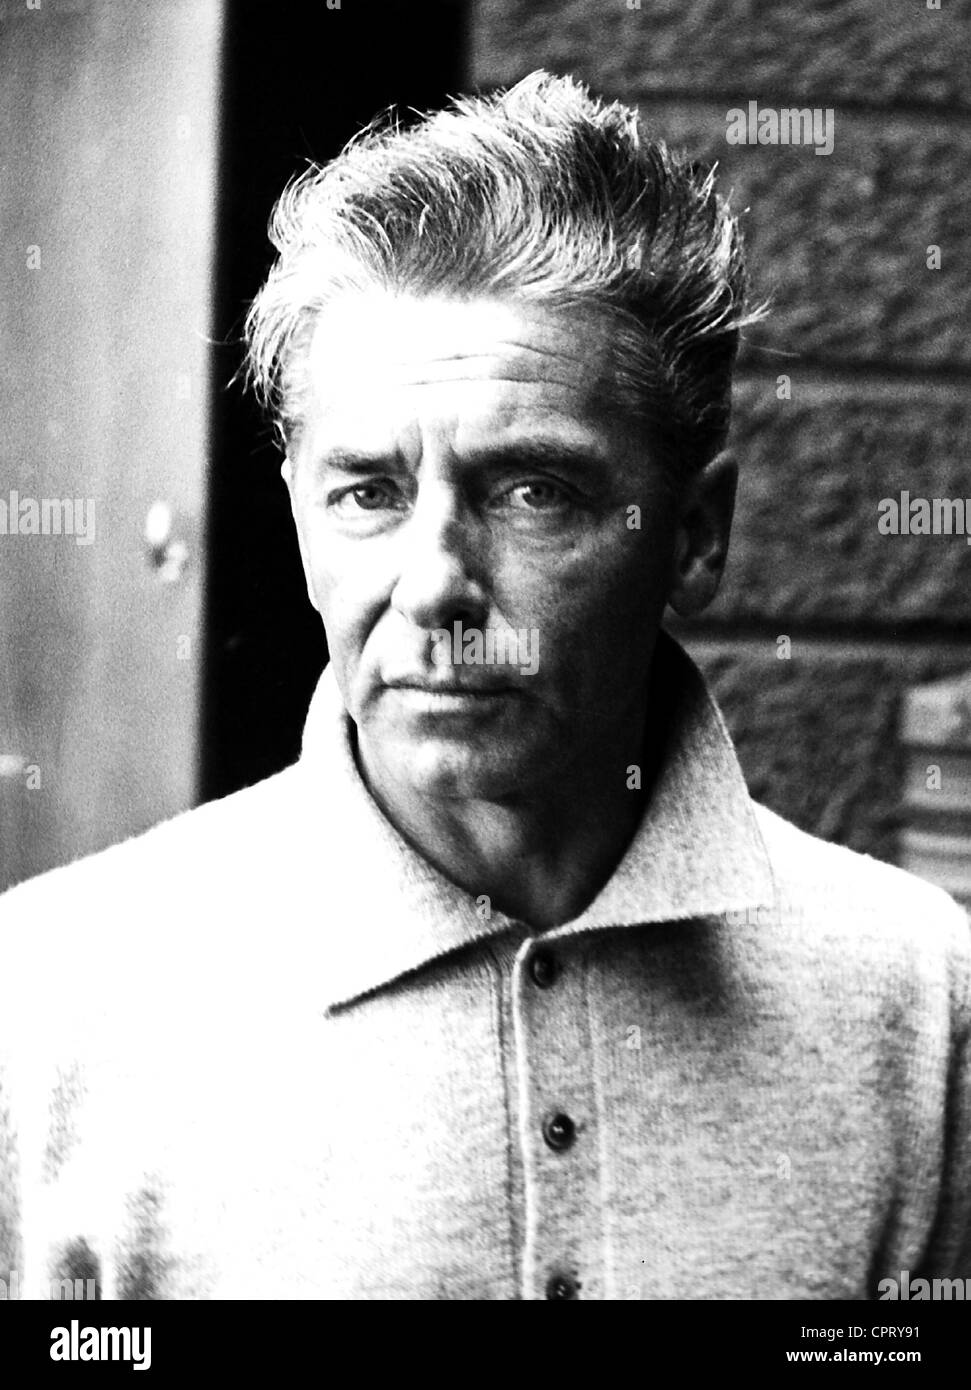 Karajan, Herbert von, 5.4.1908 - 16.7.1989, Austrian conductor, portrait, 1960s, Stock Photo